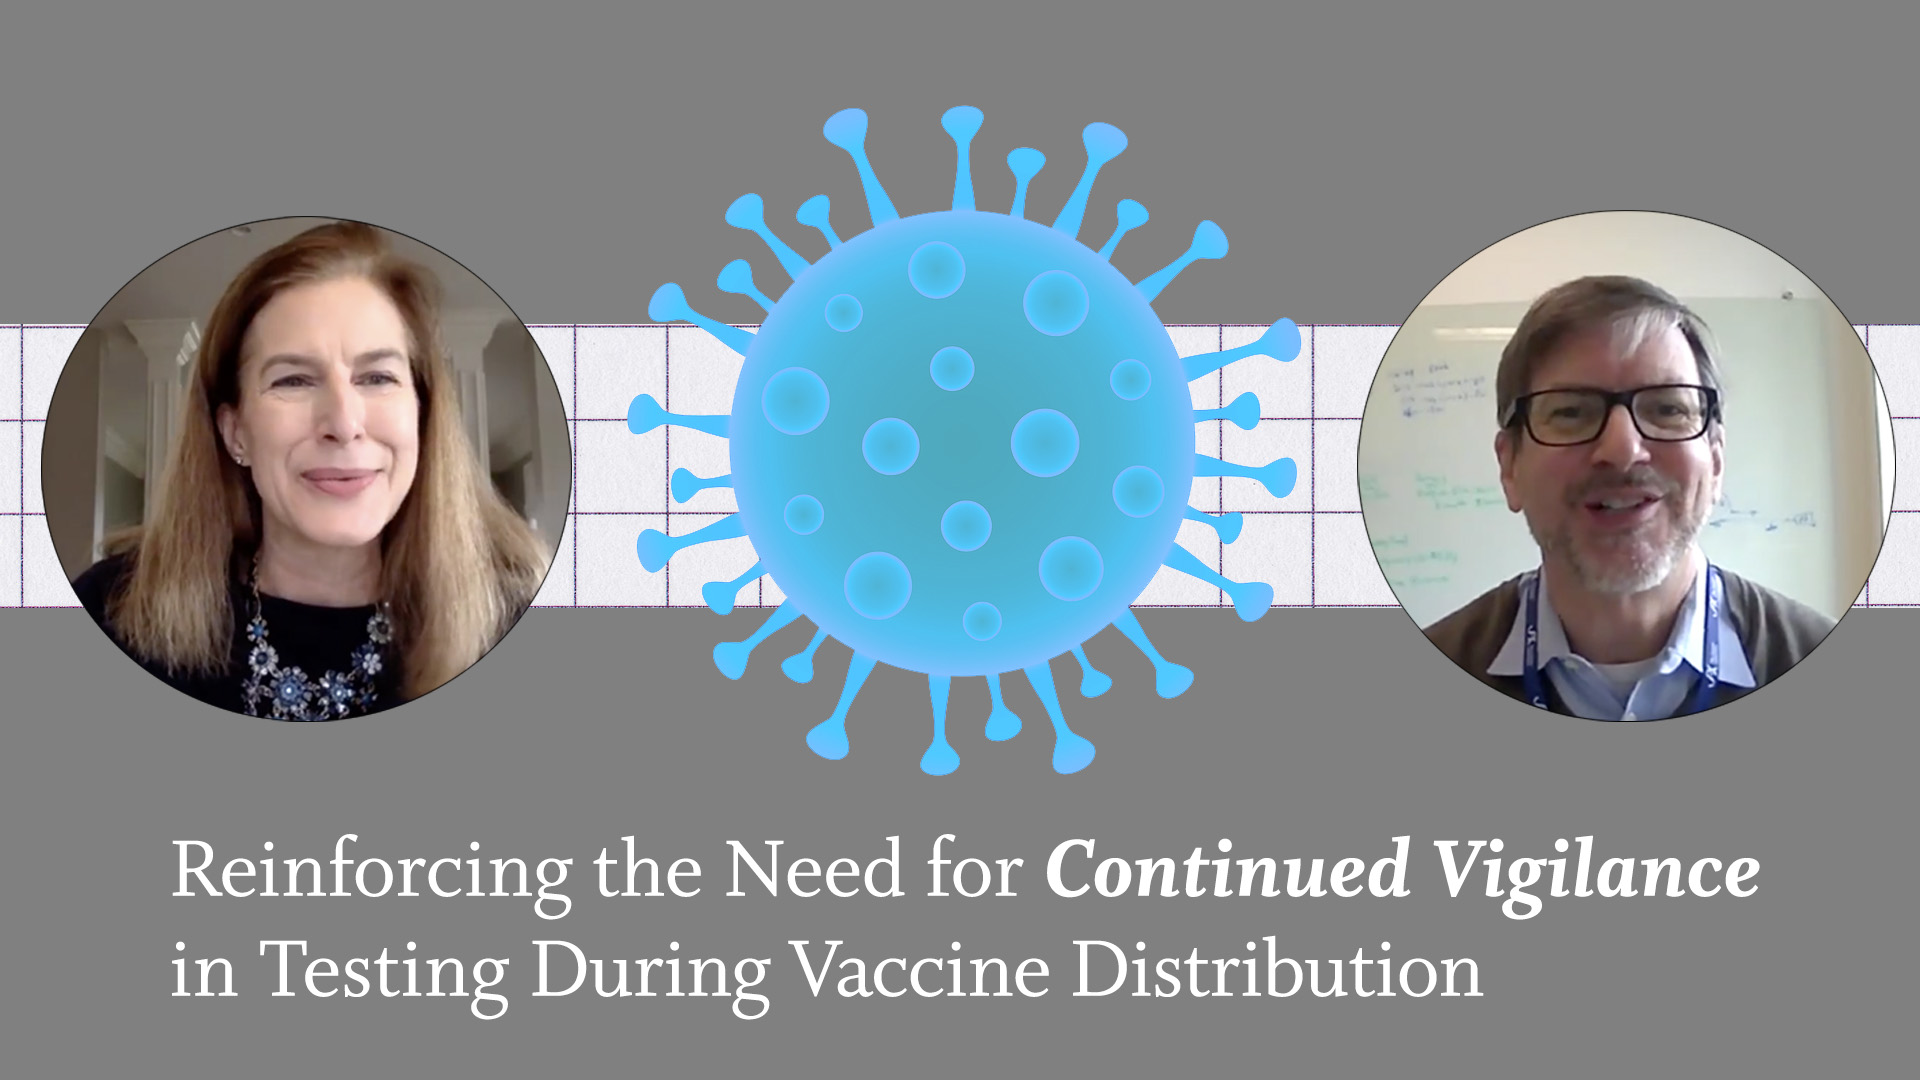 January reinforcing the need for continued vigilance in testing during vaccine dist